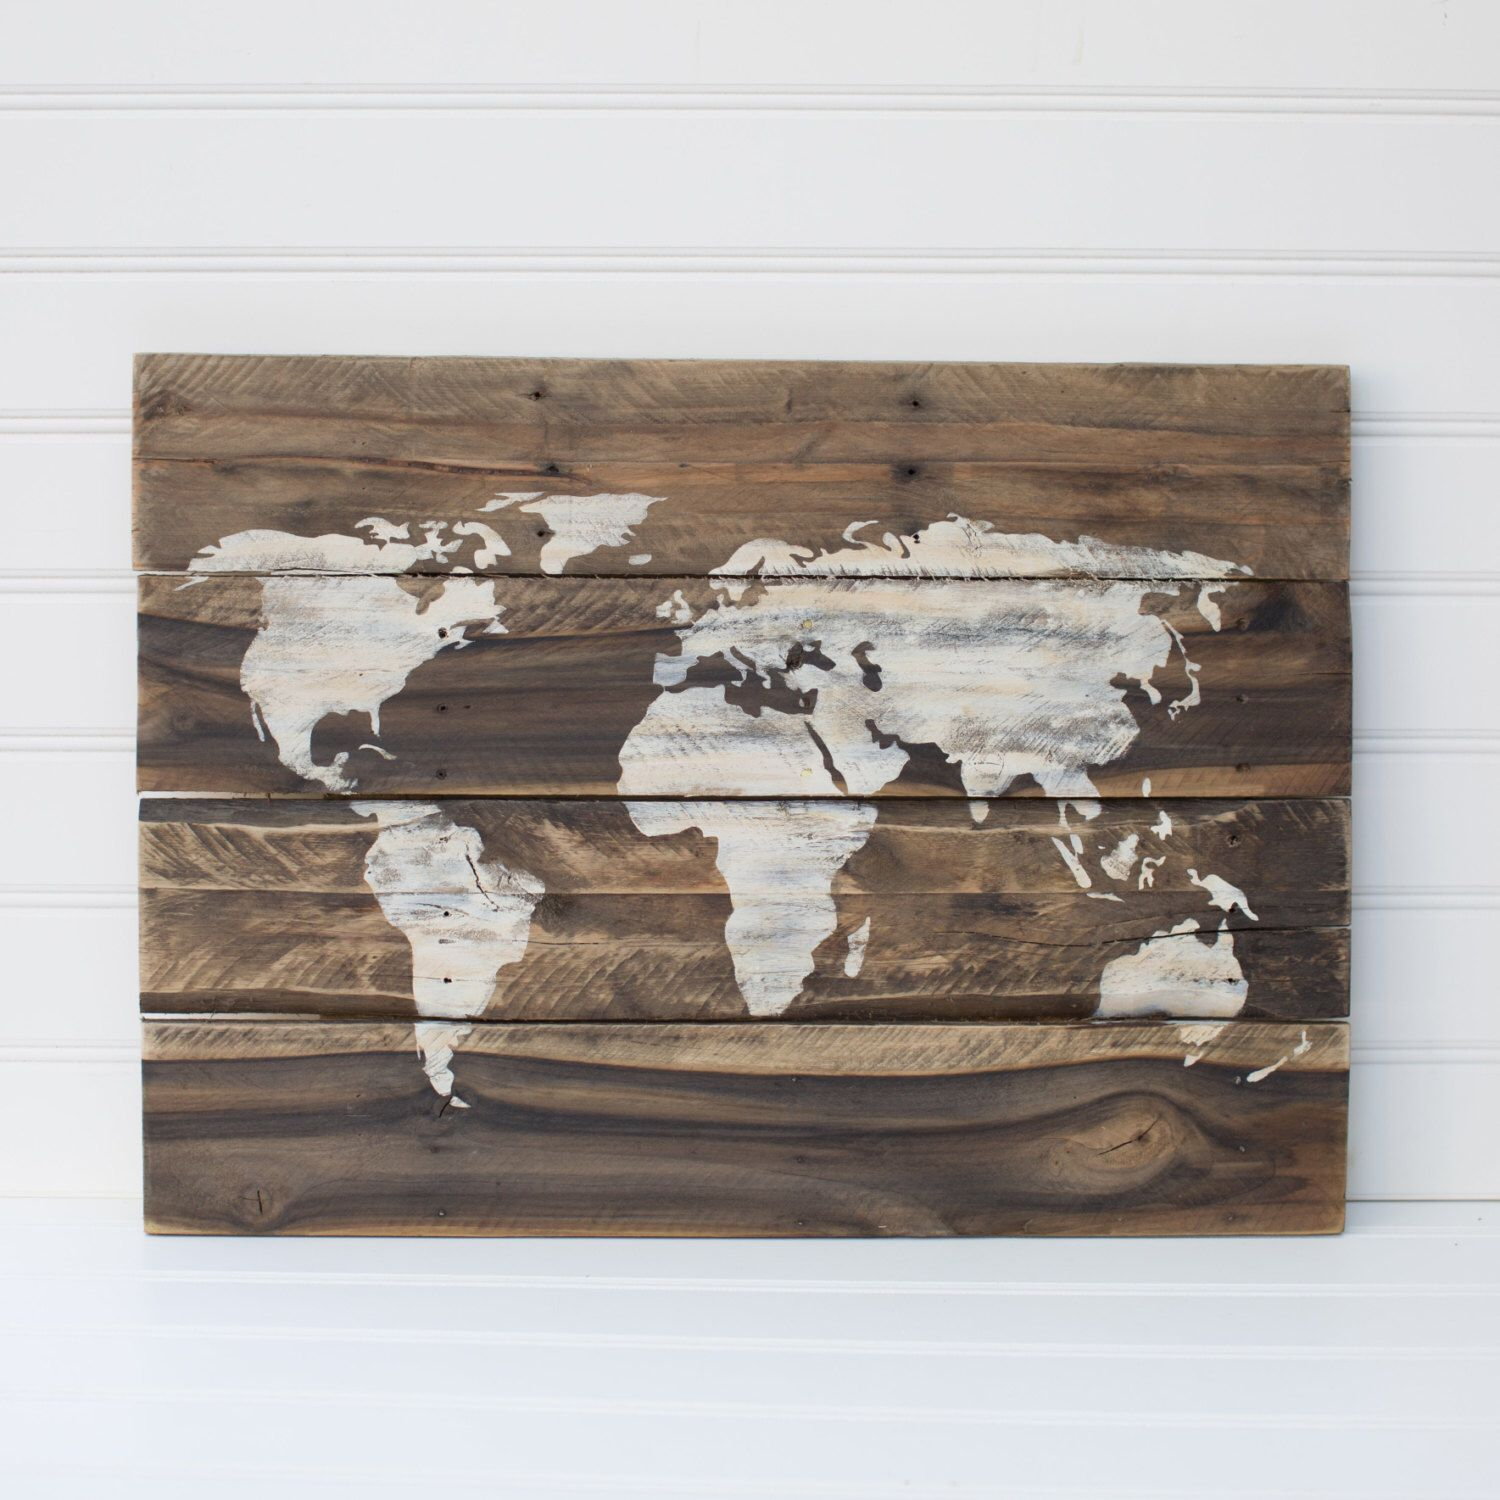 World map rustic wooden sign made from reclaimed pallet wood by world map rustic wooden sign made from reclaimed pallet wood by aceandavy on etsy https gumiabroncs Image collections